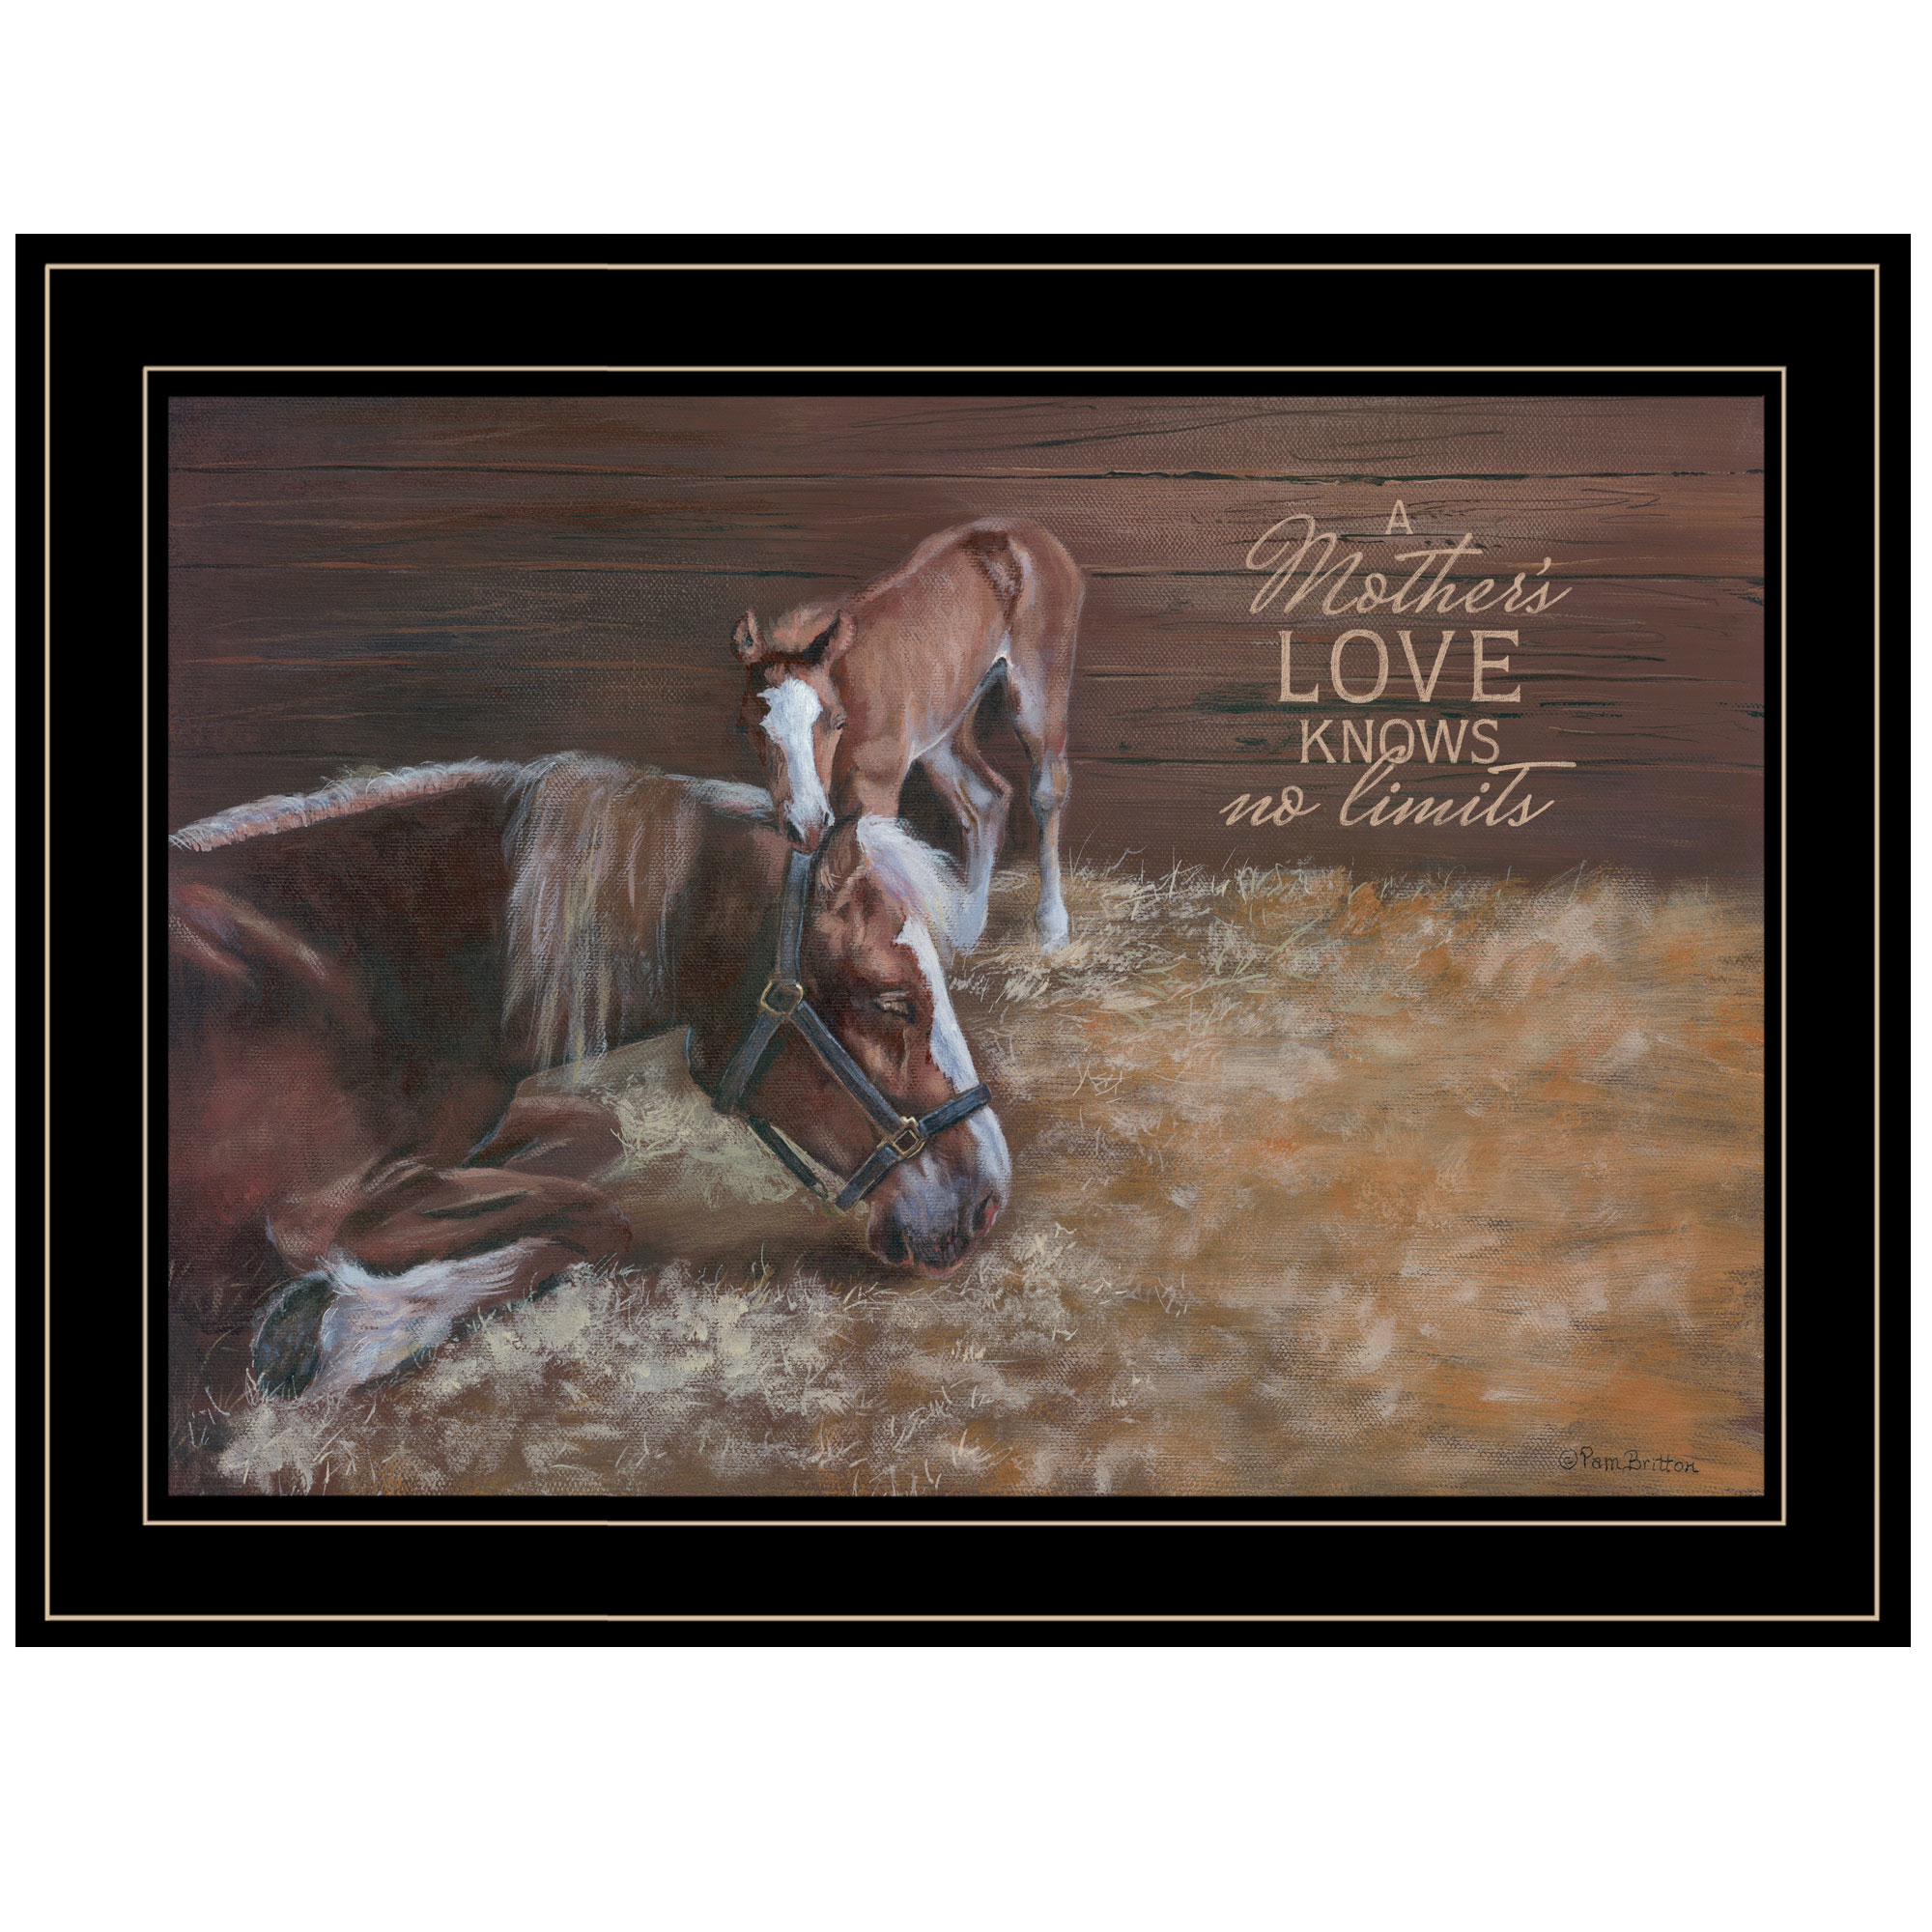 "Br390-704G A Mother Love(Horses) by artisan Pam Britton. This decorative black framed print(19x15) of a Mare with her colt. The say is ""Mother's Love Knows No Limits"". Print is textured no need for glass, and arrives ready to hang. * Textured Artwork with a 'rolled on' acid-free acrylic coating to create a canvas painting effect. * UV Protectant Coating protects artwork from fading. No glass is necessary. * Moulding adds natural beauty to the framed art. Frame is keyholed for the easy hanging. * This Fine Home Decor piece made in the USA by Woman Owned Business (Wbe) is a perfect gift for a friend or relative. *"